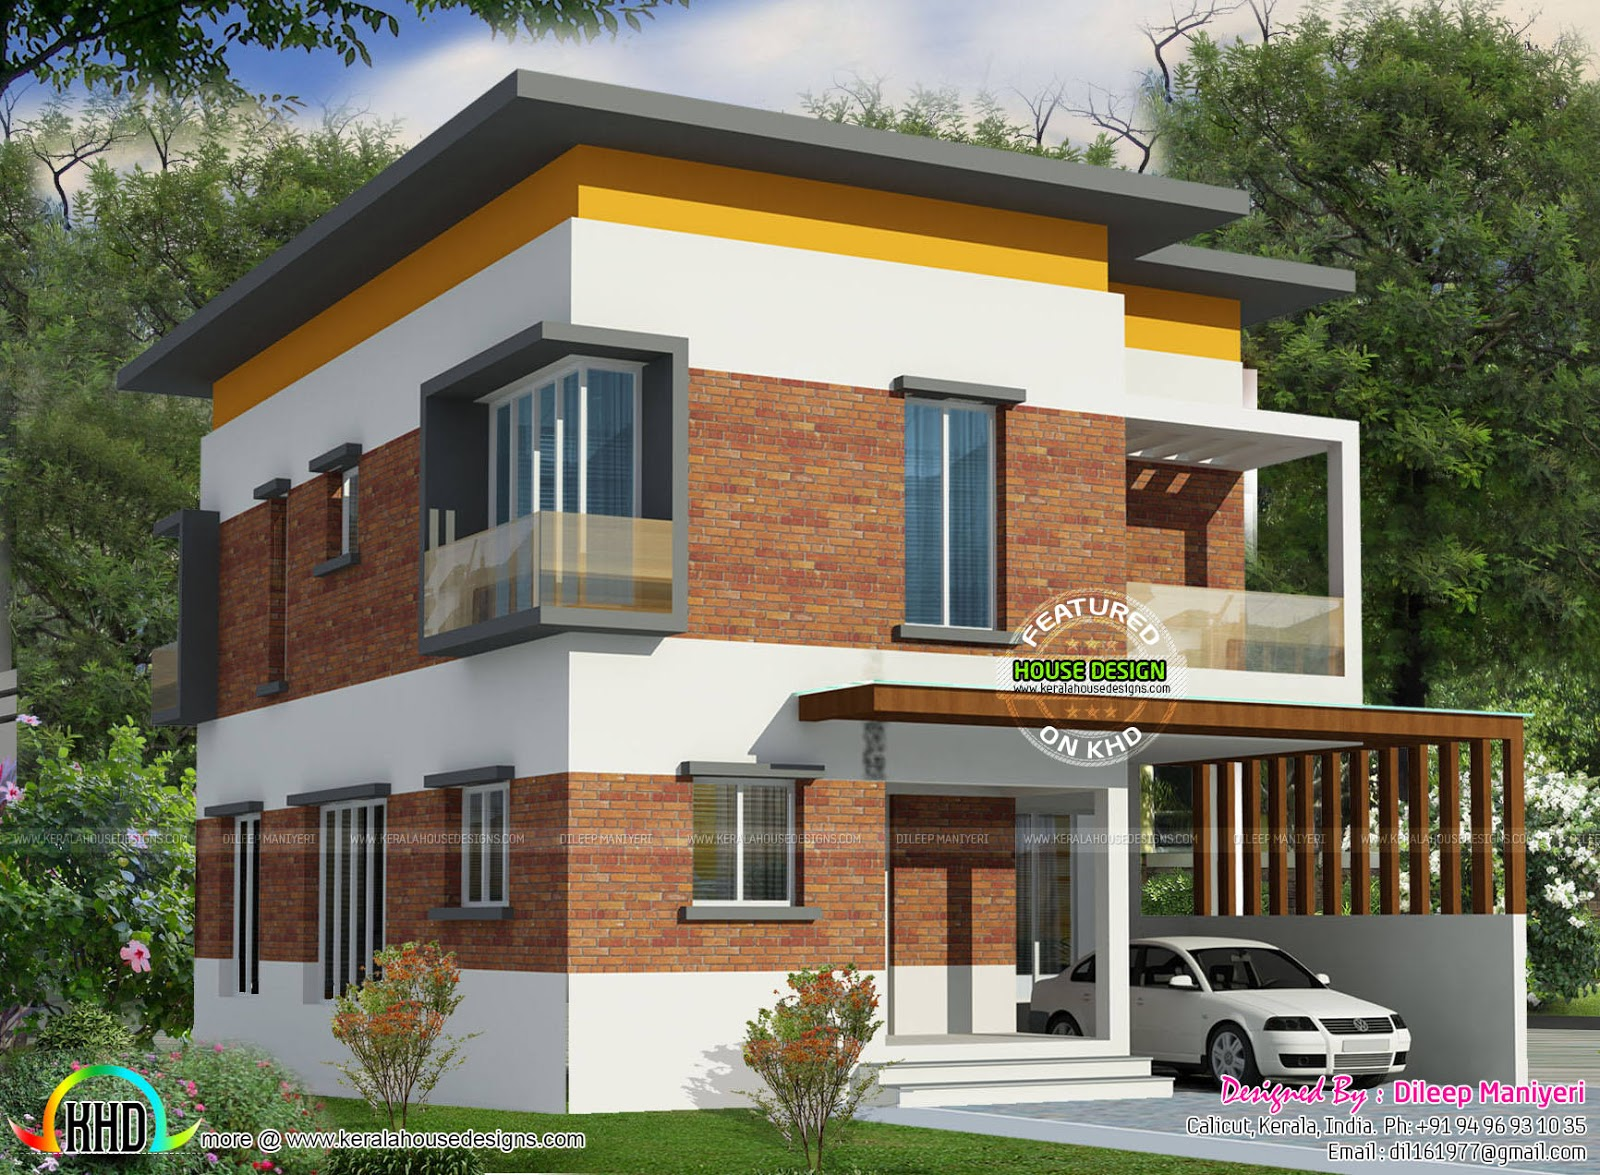 3 bedroom flat roof small home - Kerala home design and ...